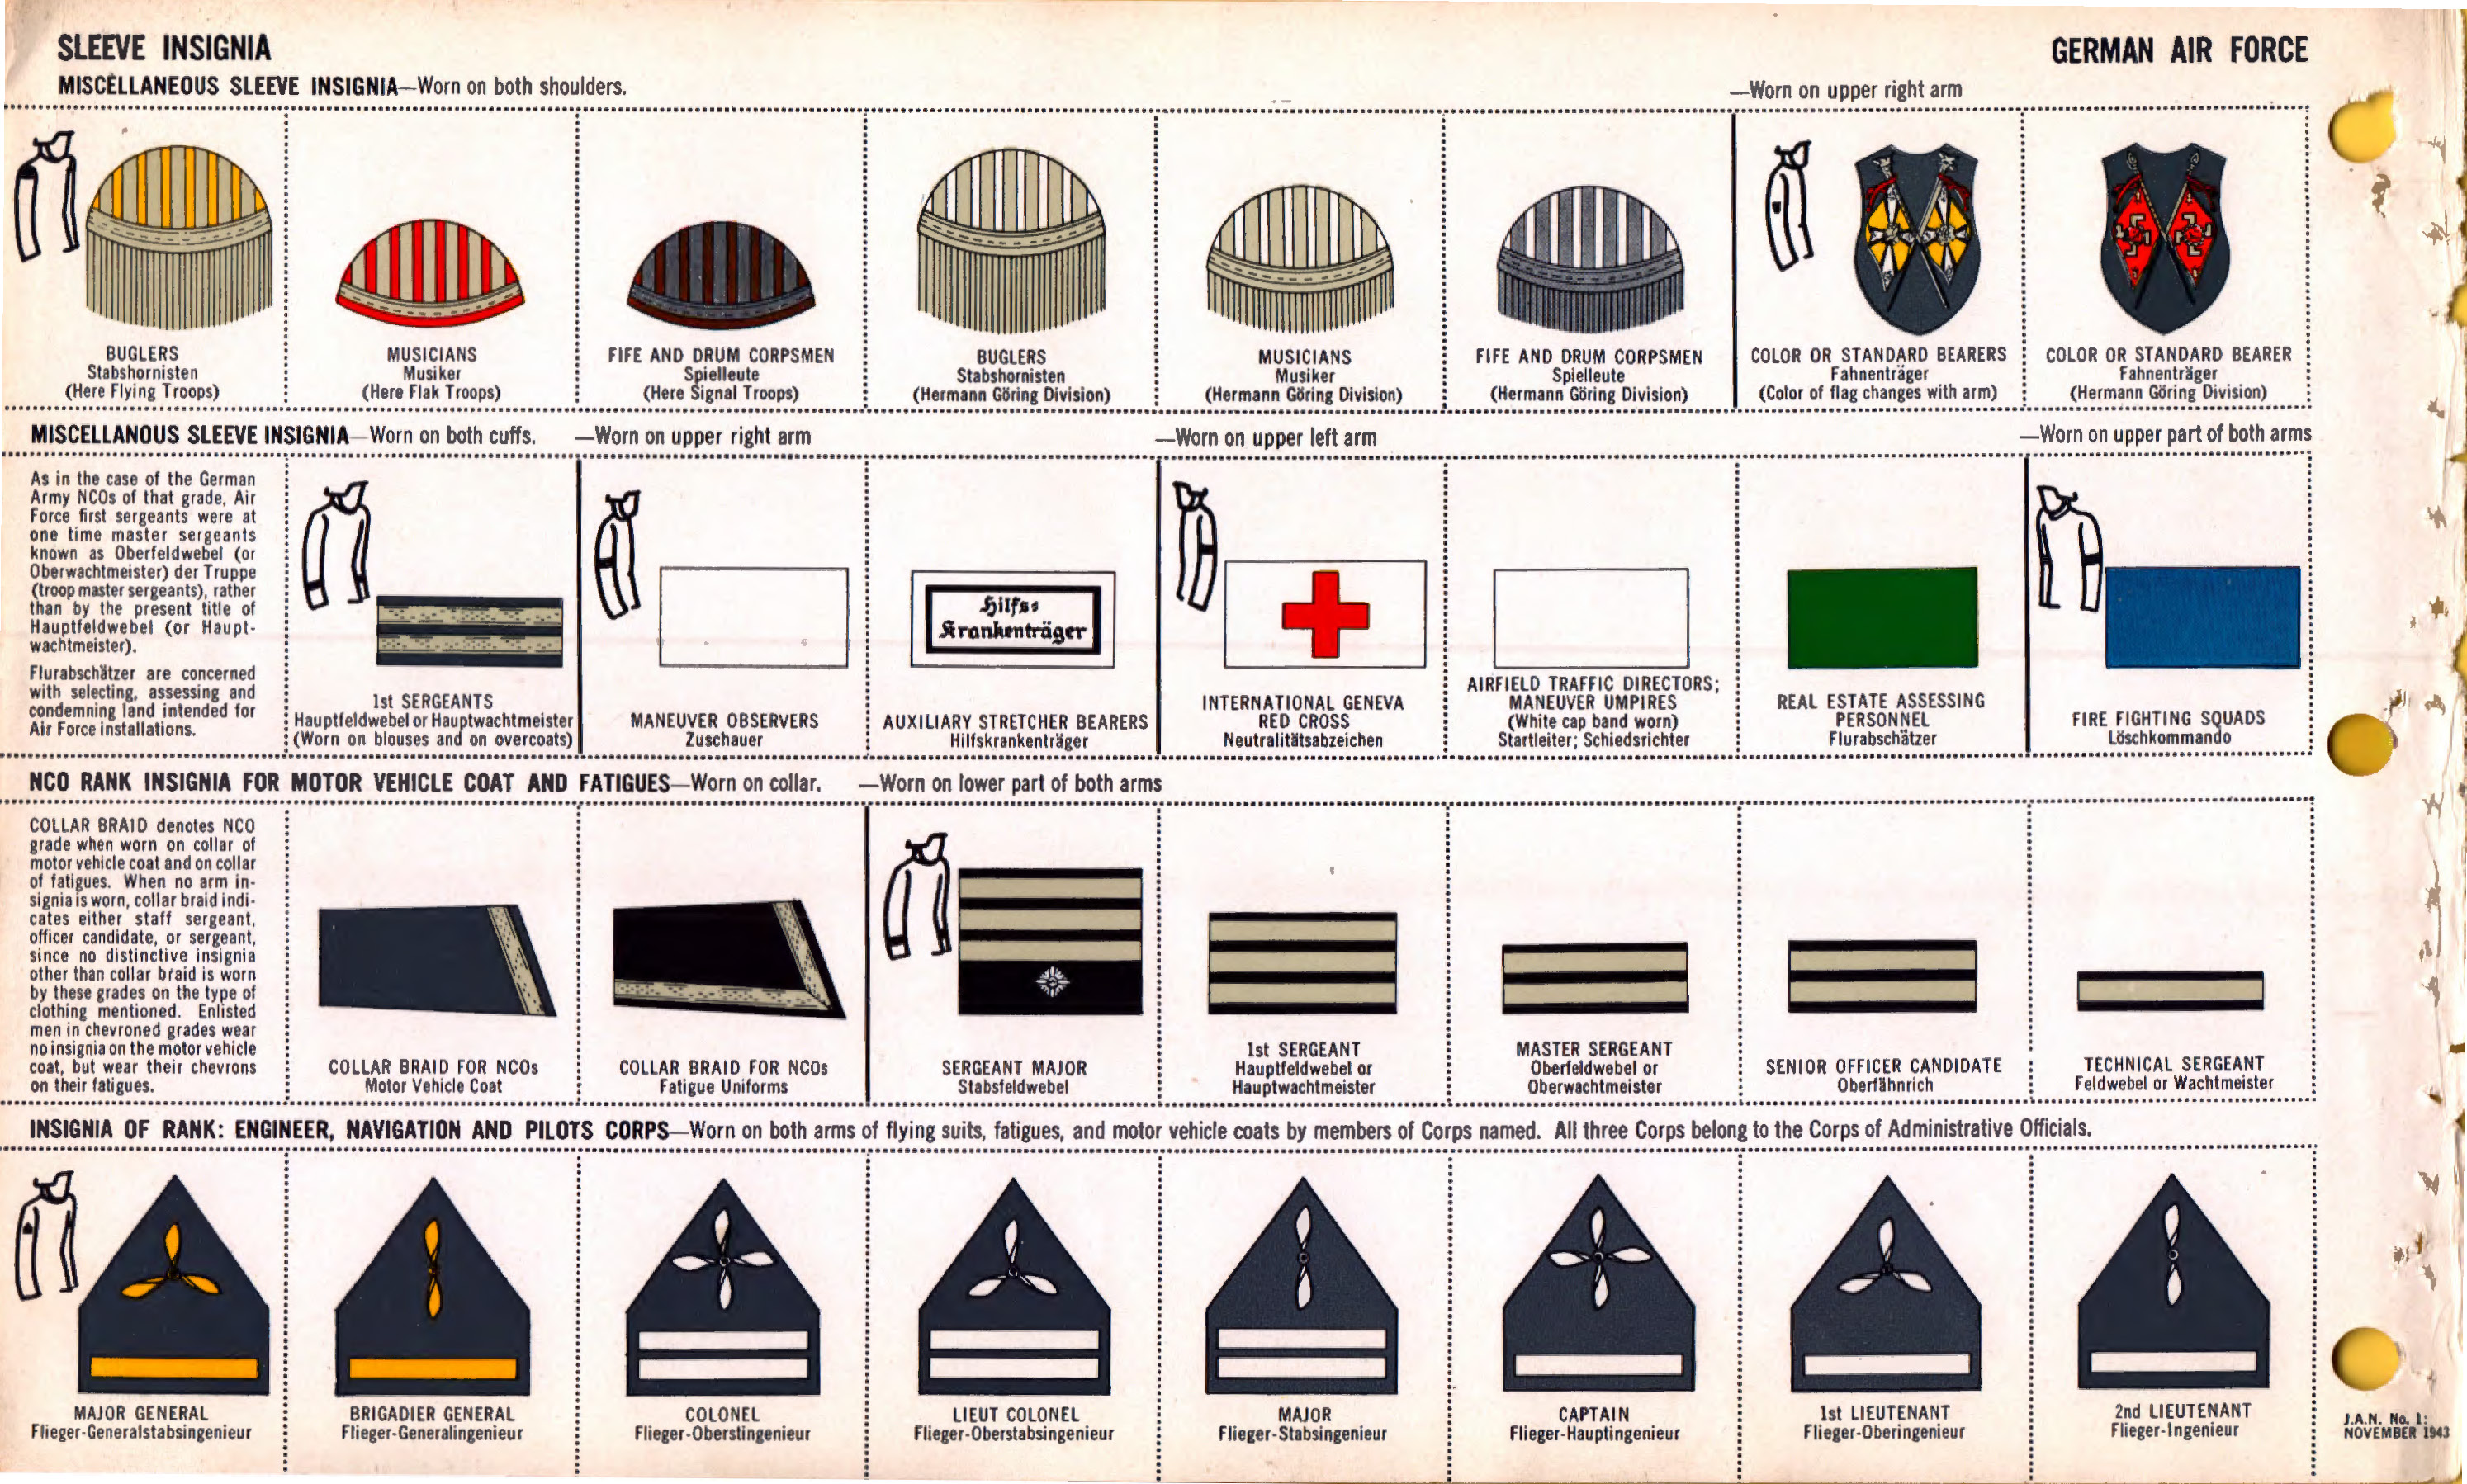 File Oni Jan 1 Uniforms And Insignia Page 038 German Air Force Luftwaffe Ww2 Sleeve Insignia Misc Musicians Standard Bearer Rank Insignia On Fatigues Engineer Navigation Pilots Etc Nov 1943 Field Recognition Us